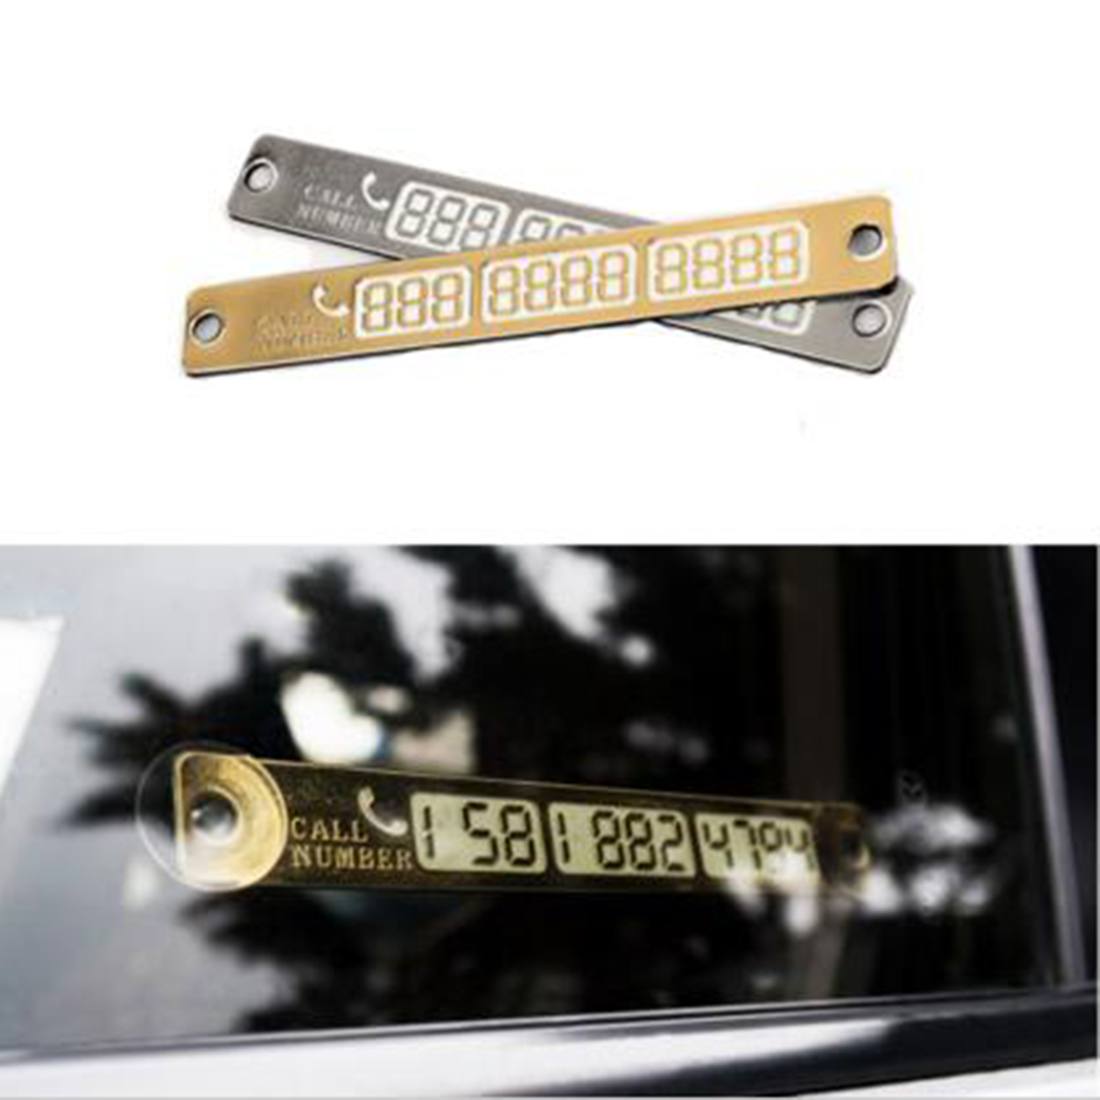 Hot Golden/silver Car Luminous Temporary Car Parking Card Notification Sucker Plate Car Styling Phone Number Card 15*2cm